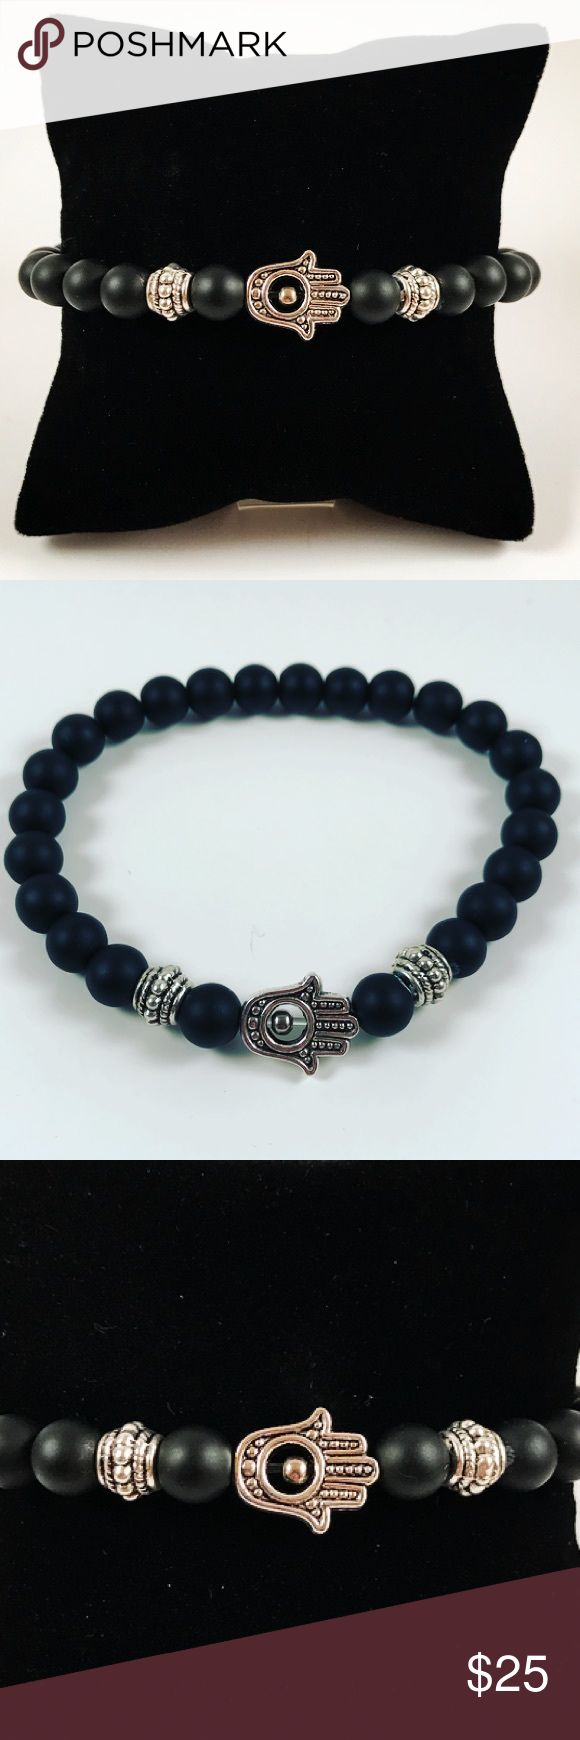 "SALE !! hamsa/hand of god & onyx beaded bracelet FREE GIFT WITH EVERY PURCHASE !! LET ME KNOW IF YOU WANT MEN OR WOMEN GIFT WHEN PURCHASING Men beaded bracelet. Fits most 7.5 to 8.5 inch wrist. Handmade by me , never worn by anyone. Made with black onyx and tibetan silver Hamsa / Hand of god / Fatima's hand charm. I ship fast!!✈️ Bundle and save! Any questions let me know! No transactions outside Poshmark!!  2 for $25!! All Items marked with the fox """" emoji are 2 for $25 just bundle and…"